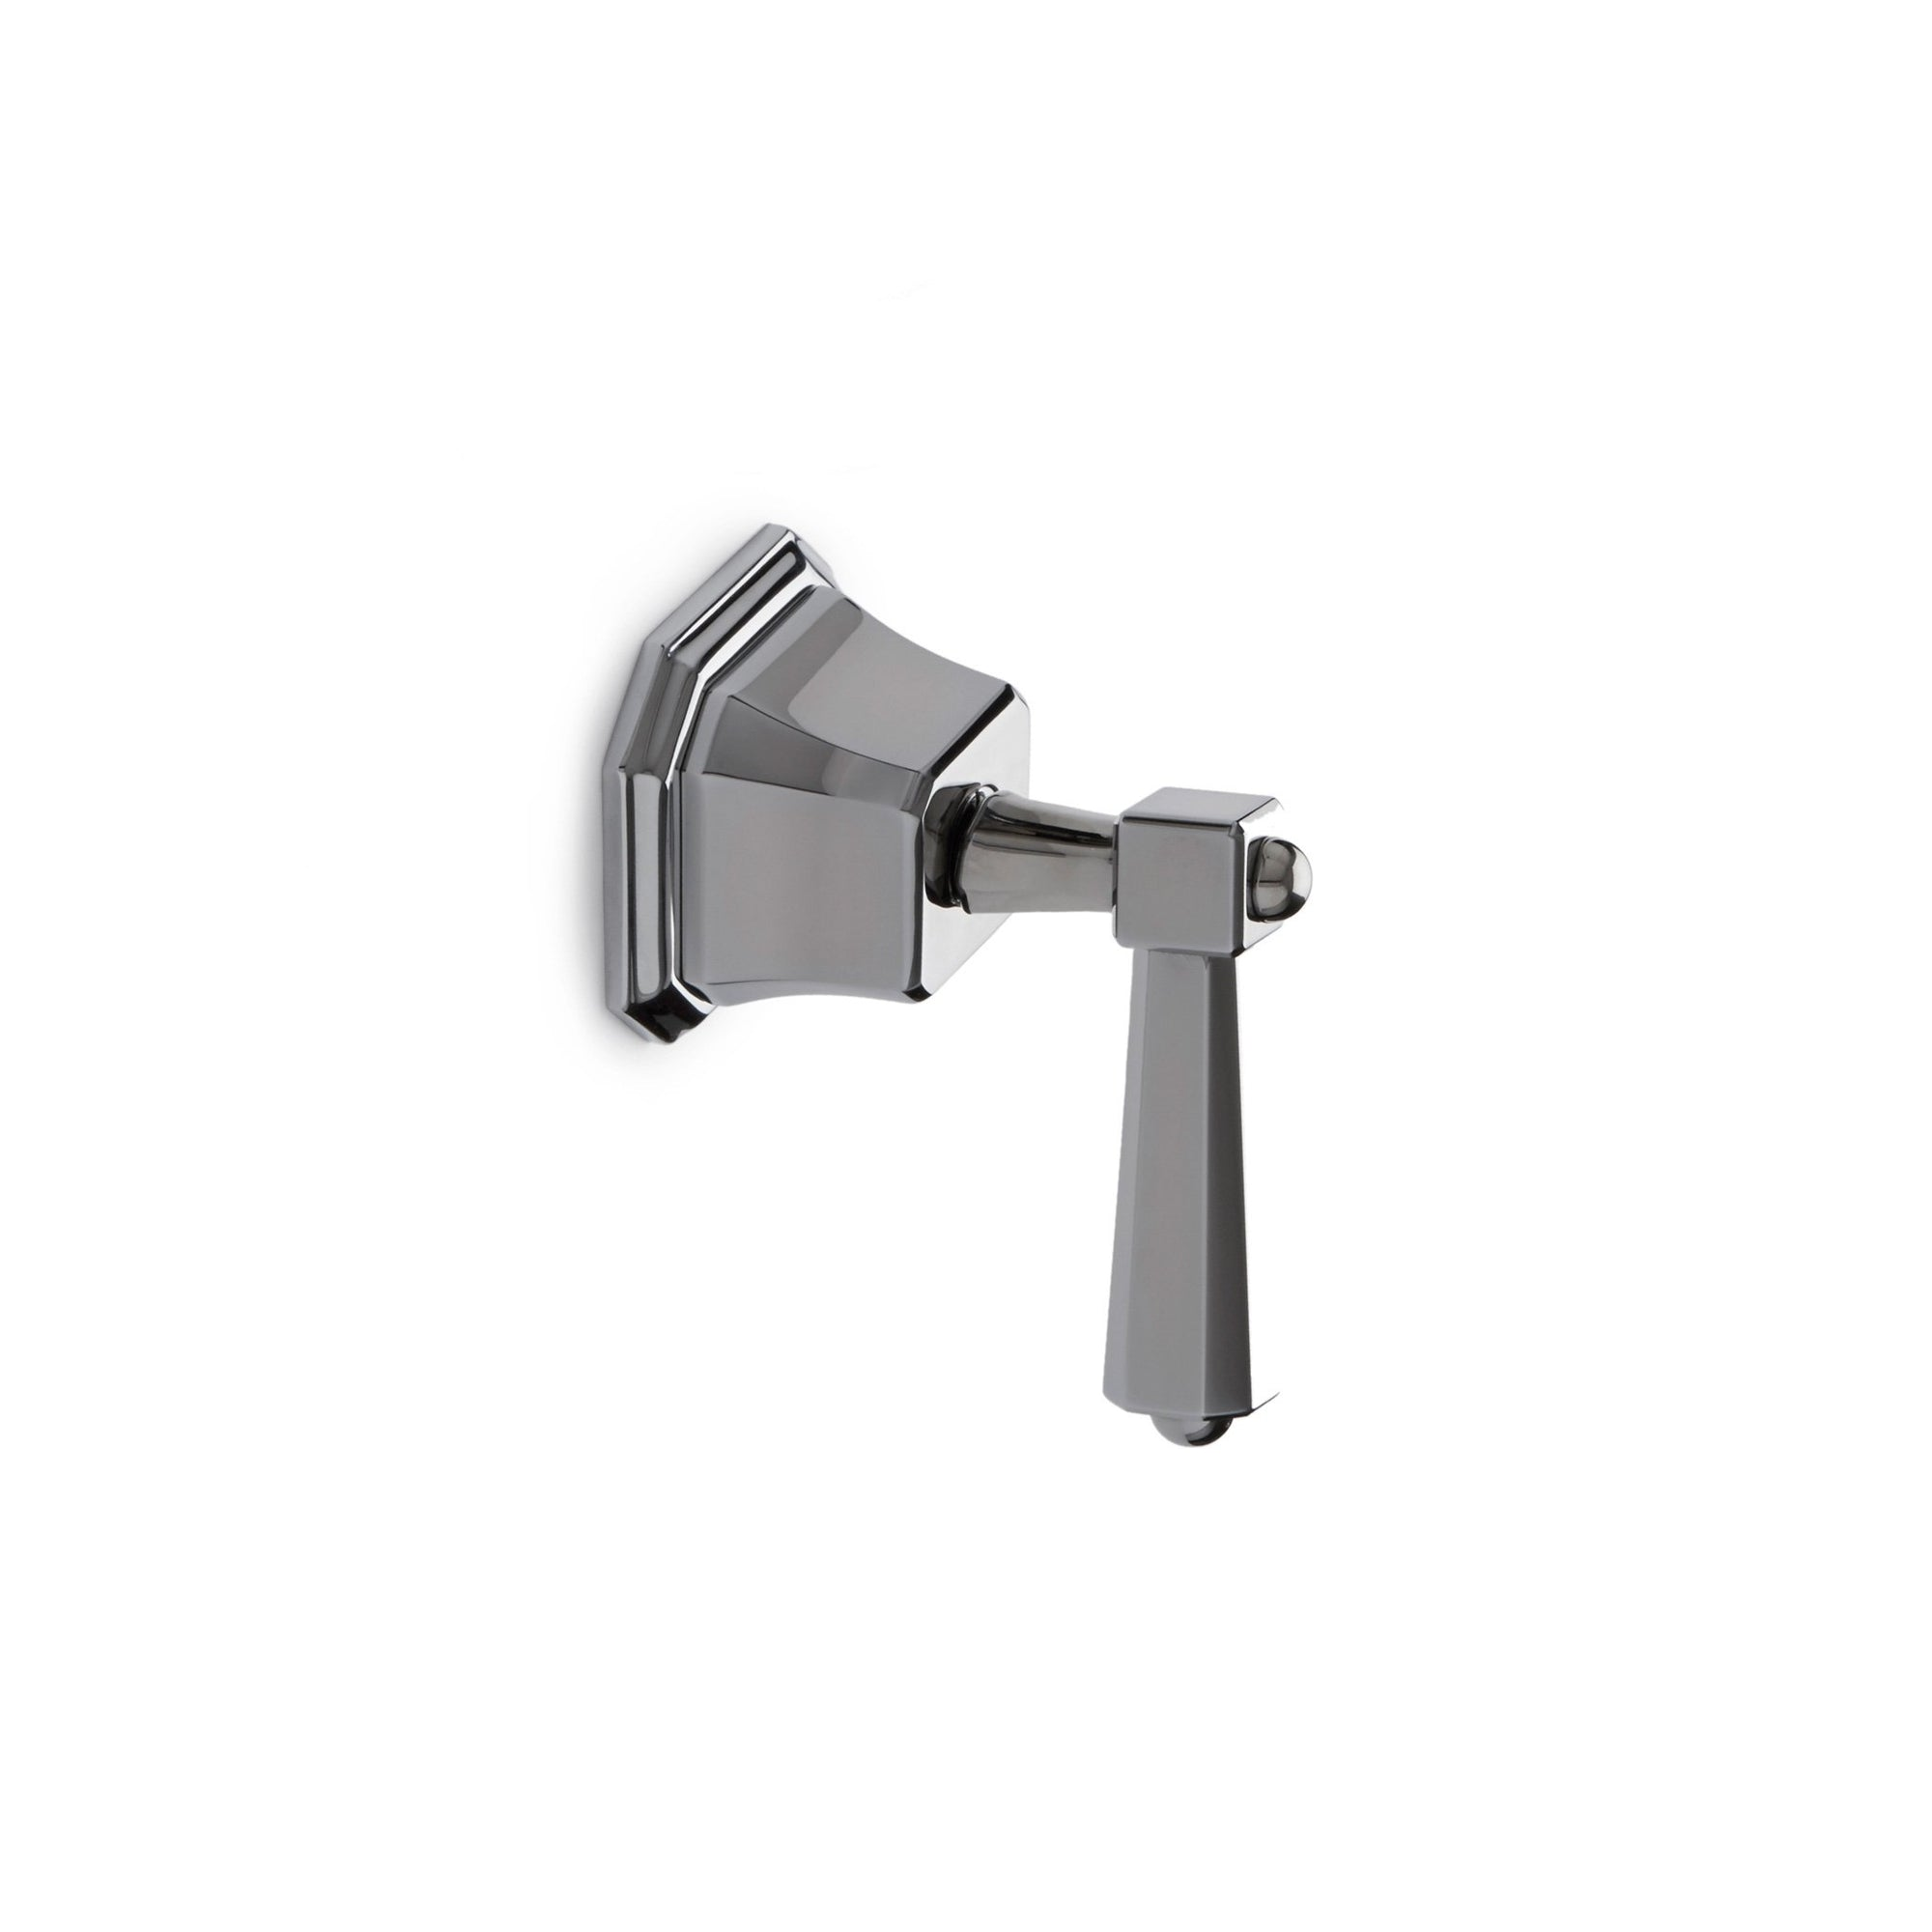 0980LV-ESC-CP Sherle Wagner International Harrison Lever Volume Control and Diverter Trim in Polished Chrome metal finish